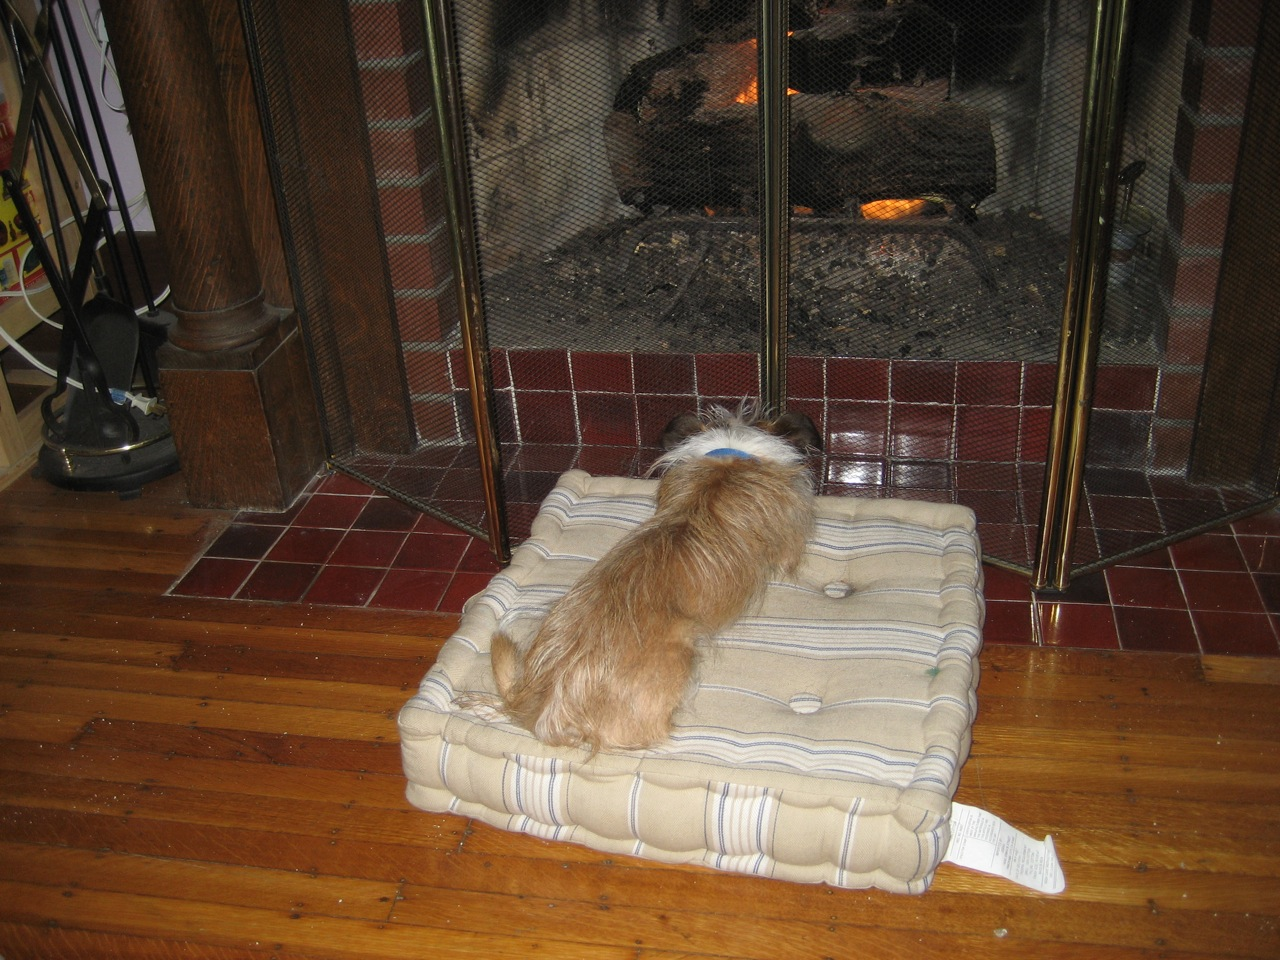 Spike in front of the fire